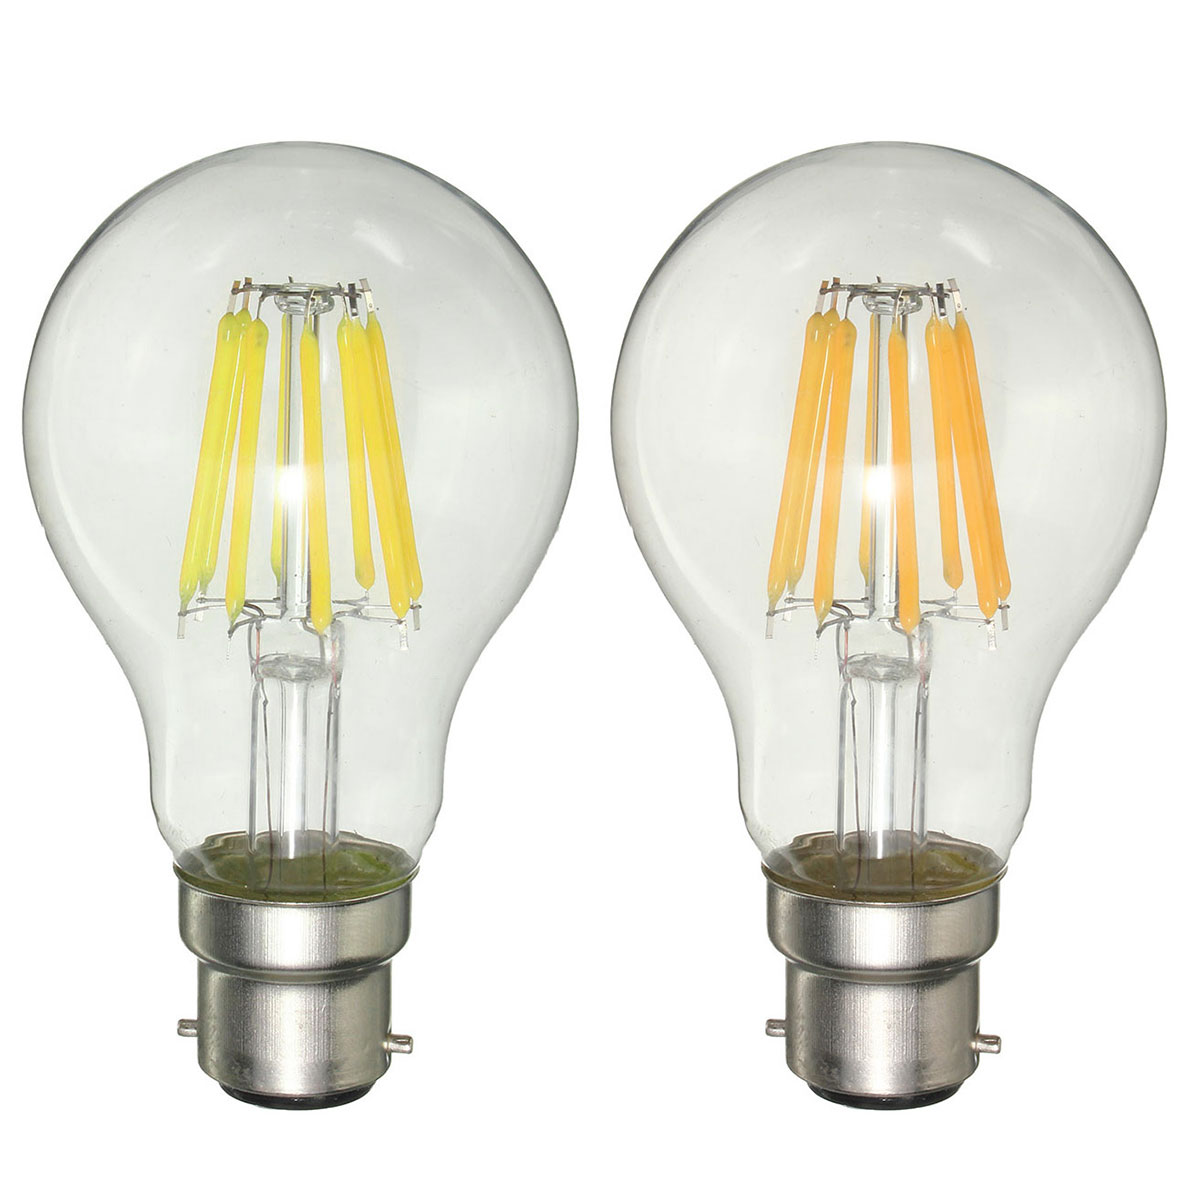 Dimmable A60 B22 8w Pure White Warm White Cob Glass